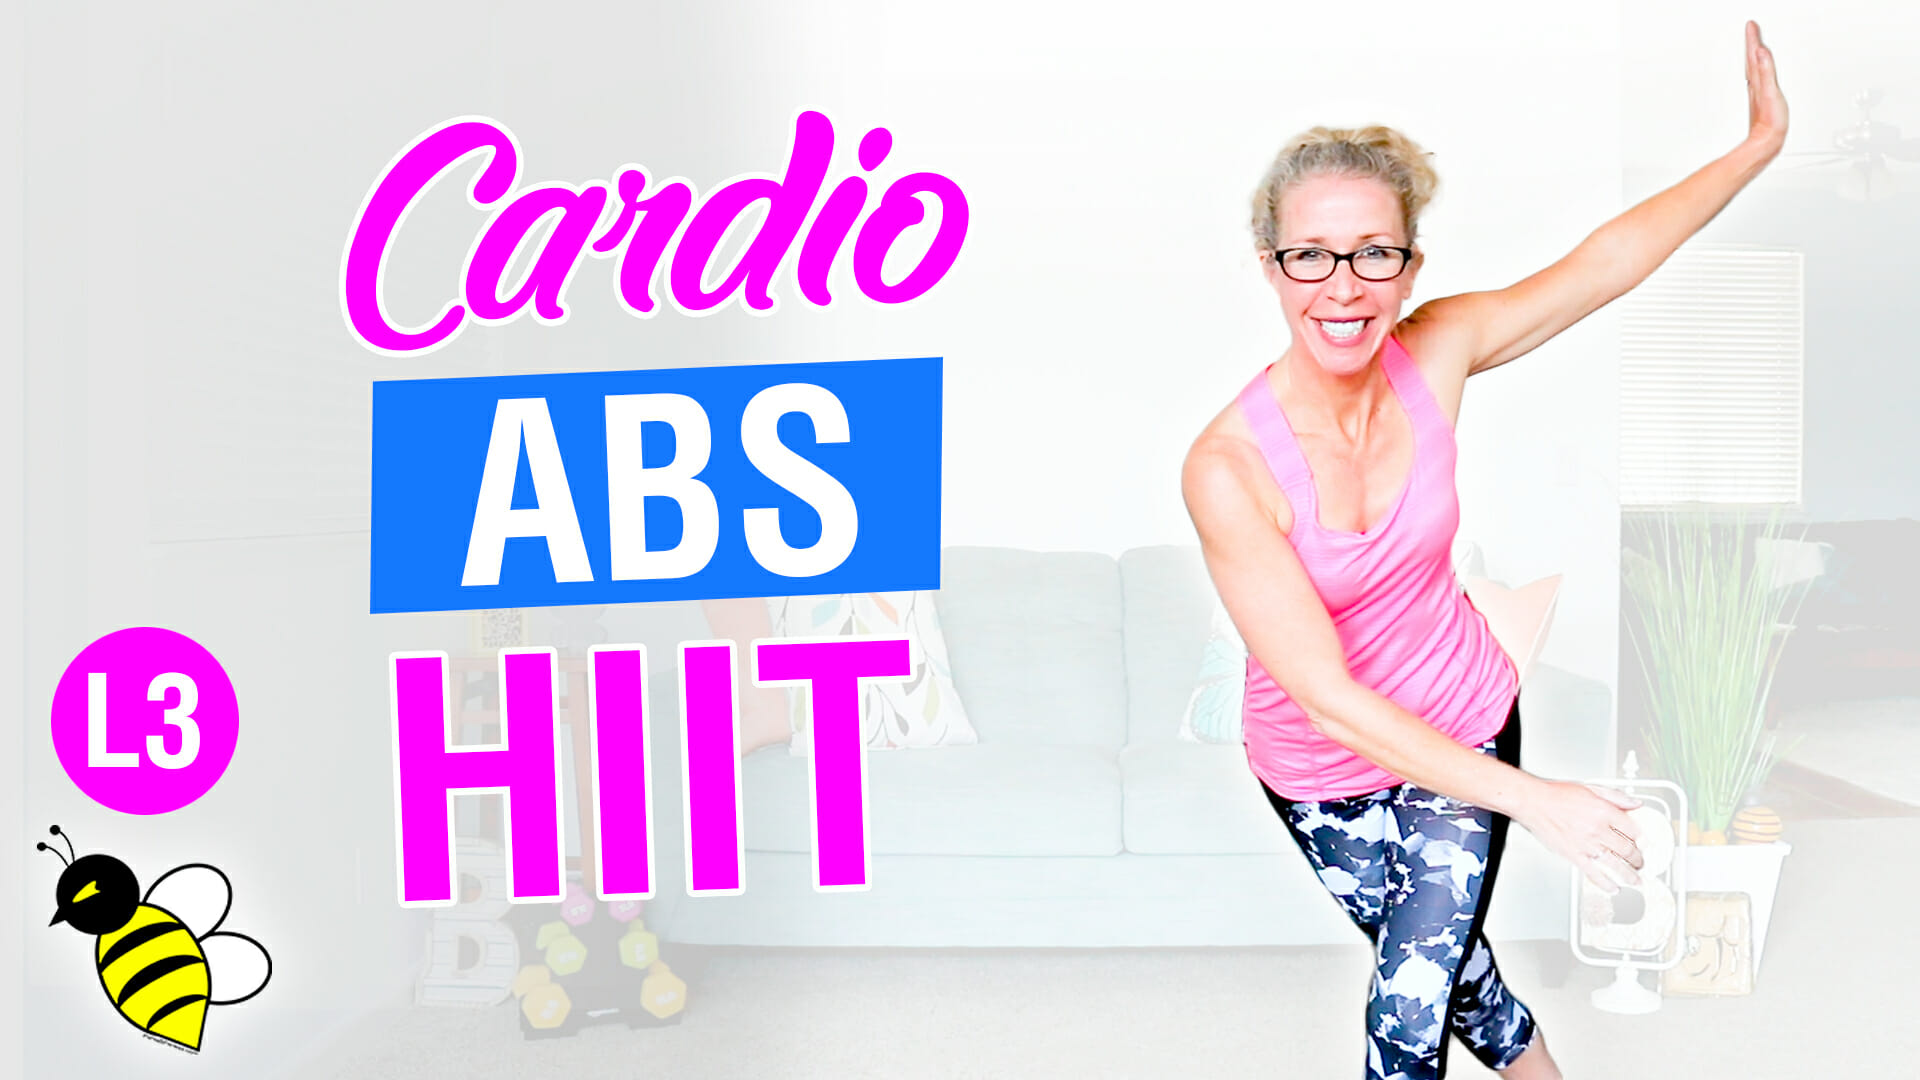 30 minute all standing CARDIO ABS HIIT workout